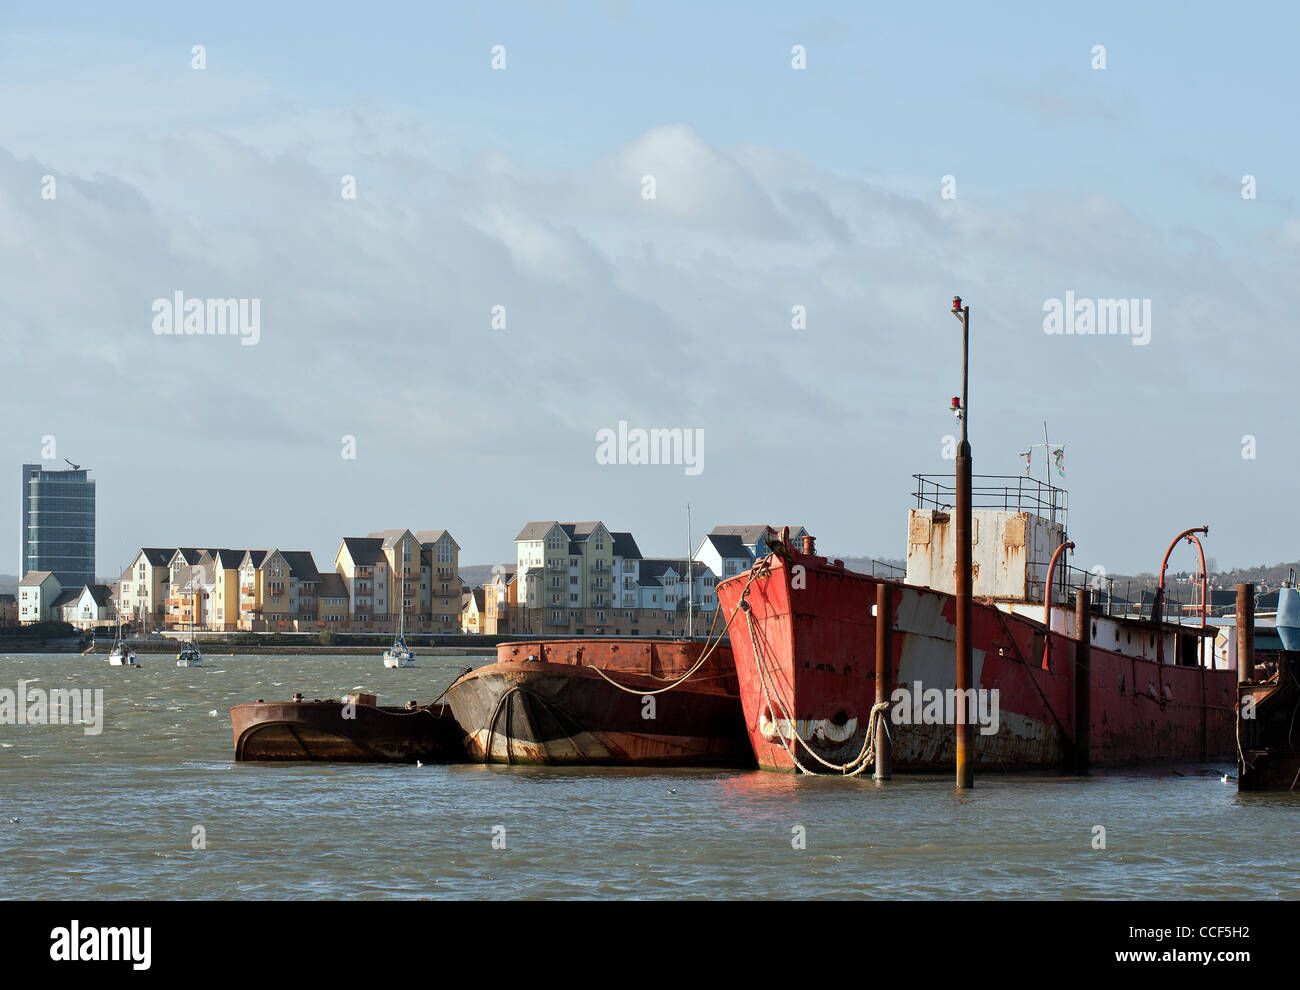 Barges and lighters tied up on the River Medway - Stock Image